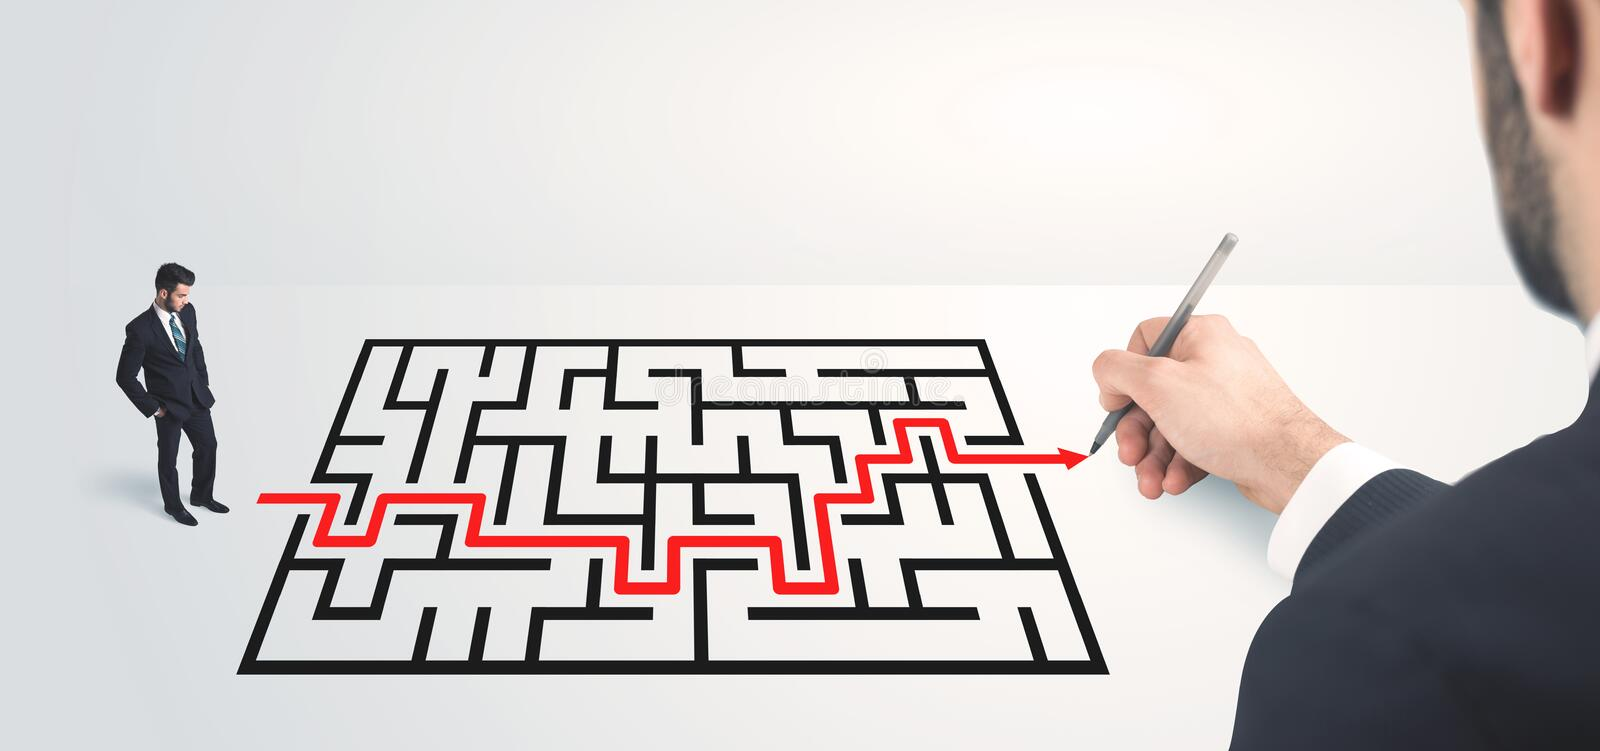 Business man looking at hand drawing solution. Maze solution concept royalty free stock photos